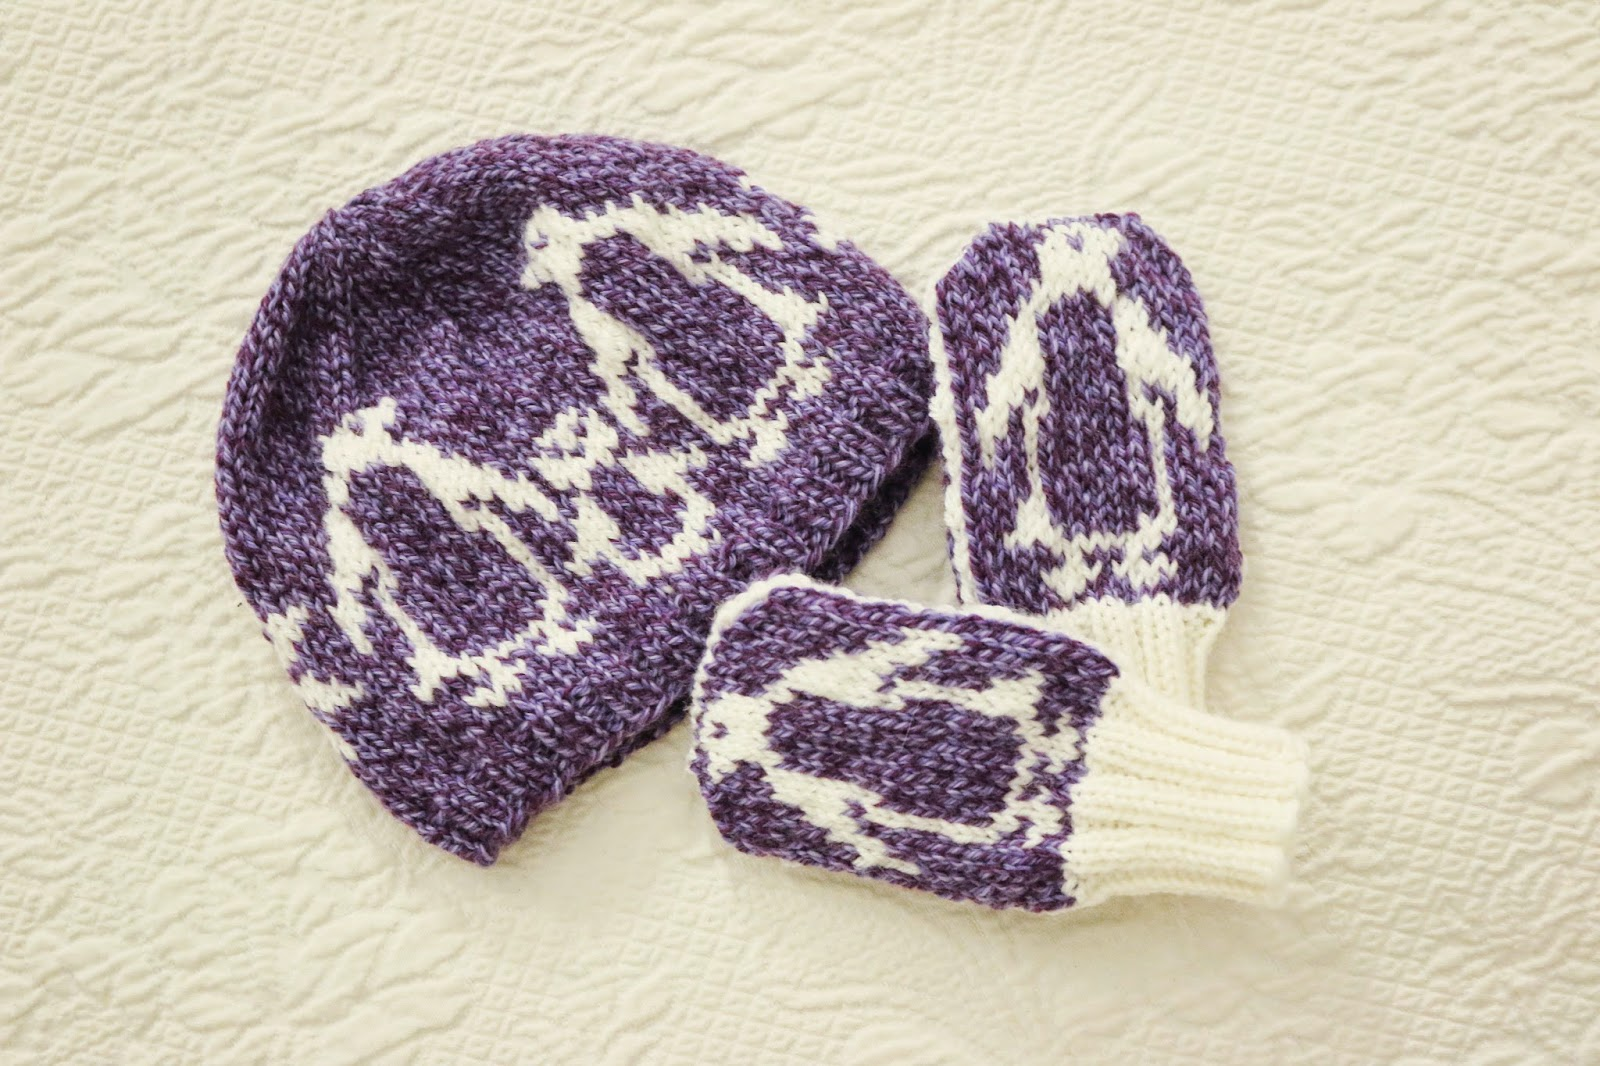 ChemKnits: Behind the design of the Snowy Penguin Hat and Mitts!